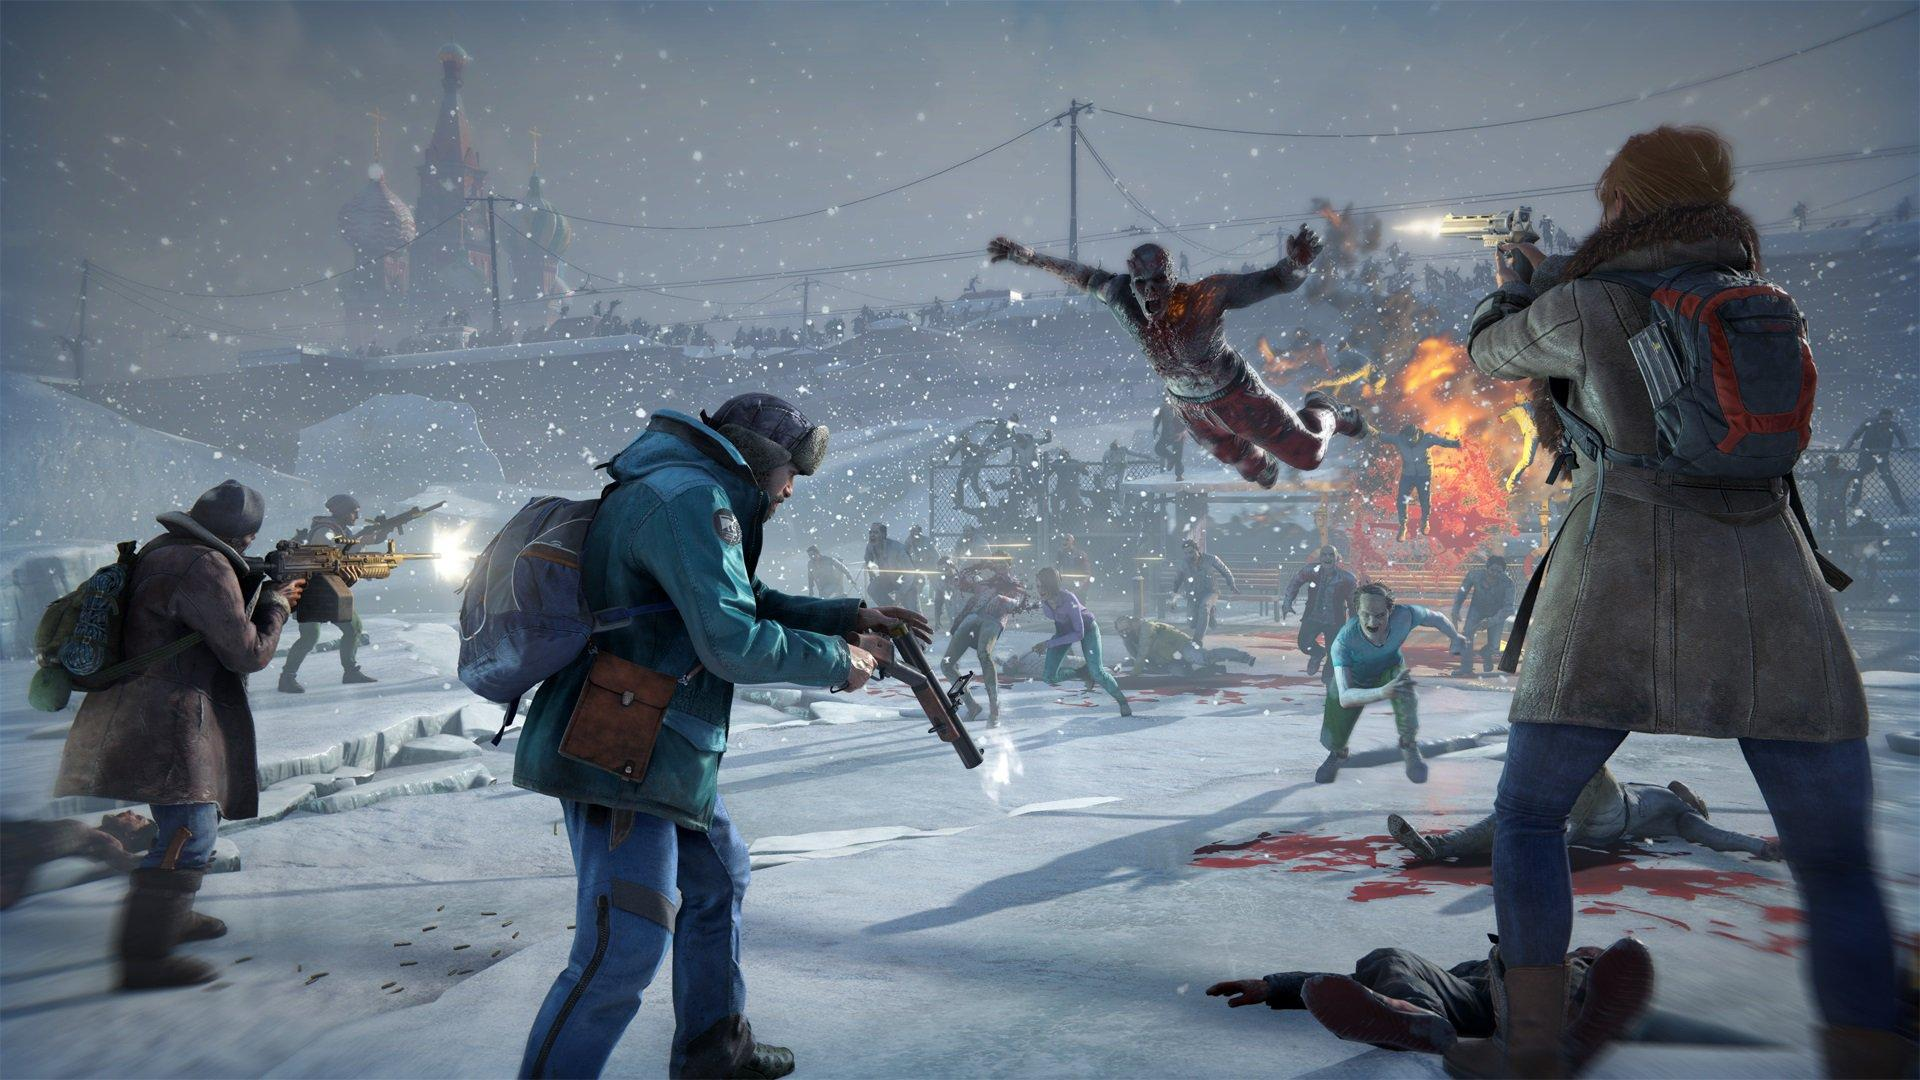 World War Z Cinematic Gameplay Trailer Showcase the Zombie Horde in Russia - Xbox One, Xbox 360 ...